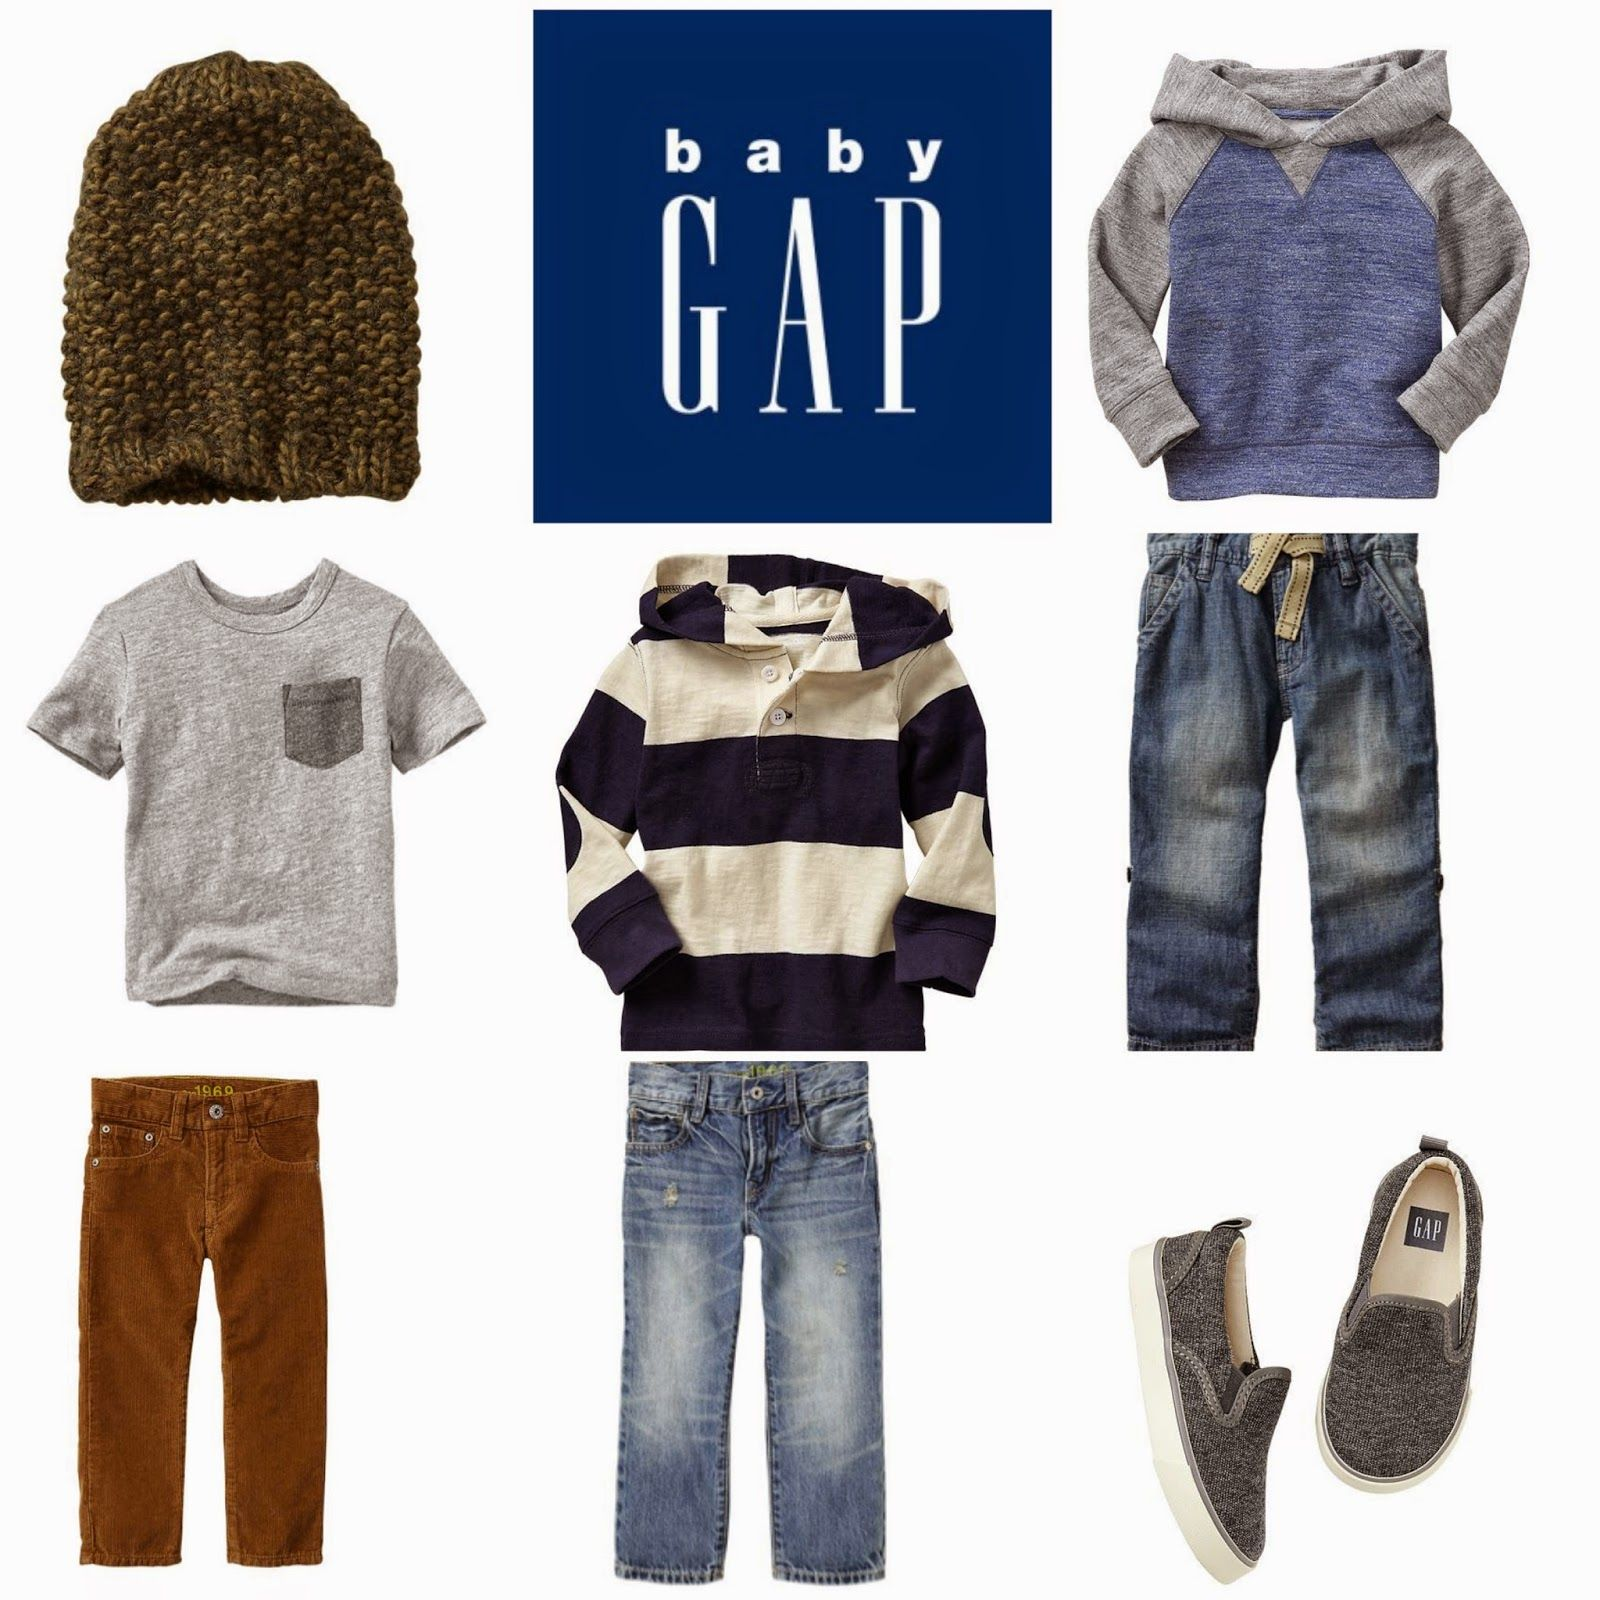 Back To School Cool Looks For Toddler Boys! | Toddler ...